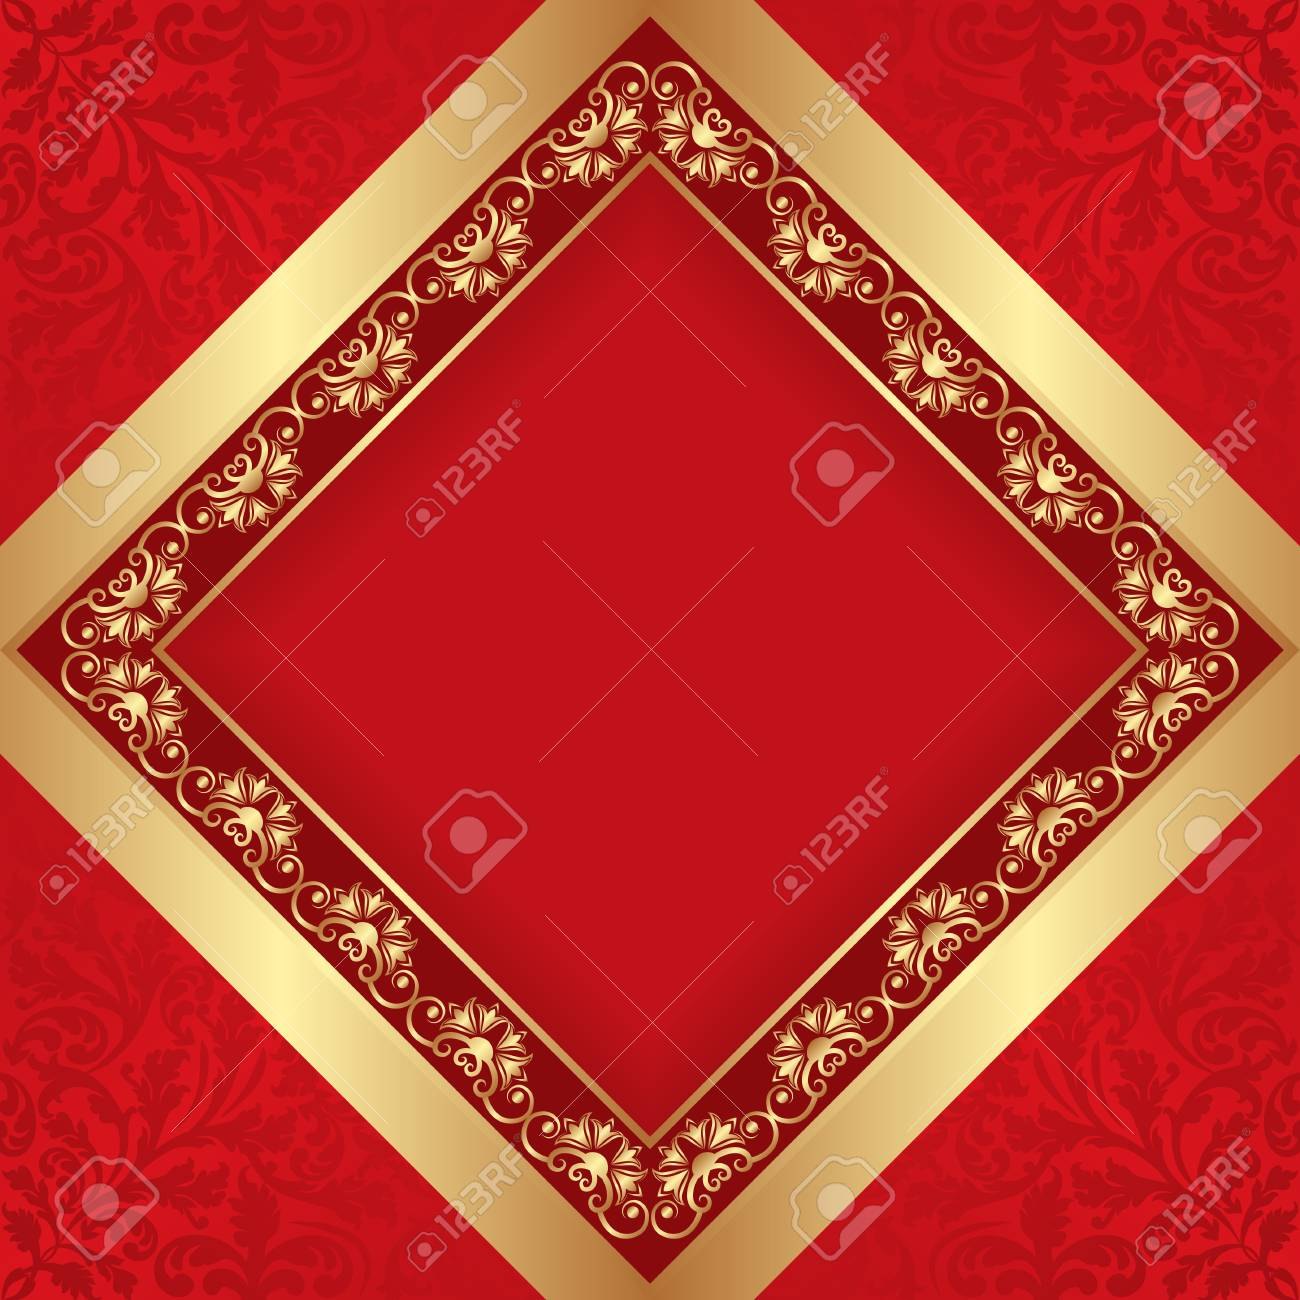 1545b0f3273 antique background with golden border Stock Vector - 52617072